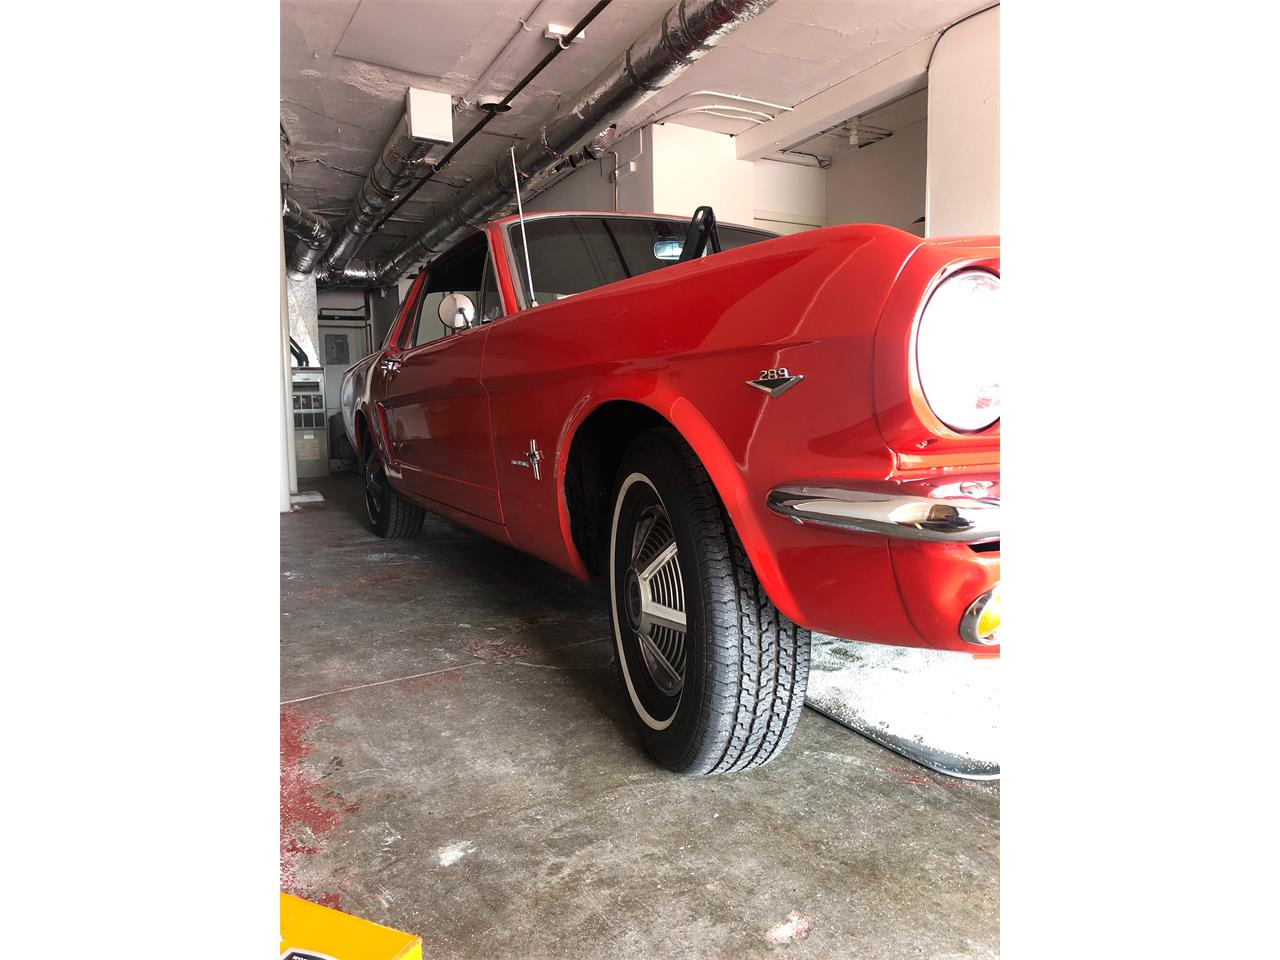 Large Picture of 1965 Ford Mustang located in San Francisco California - $17,500.00 Offered by a Private Seller - OJ2O